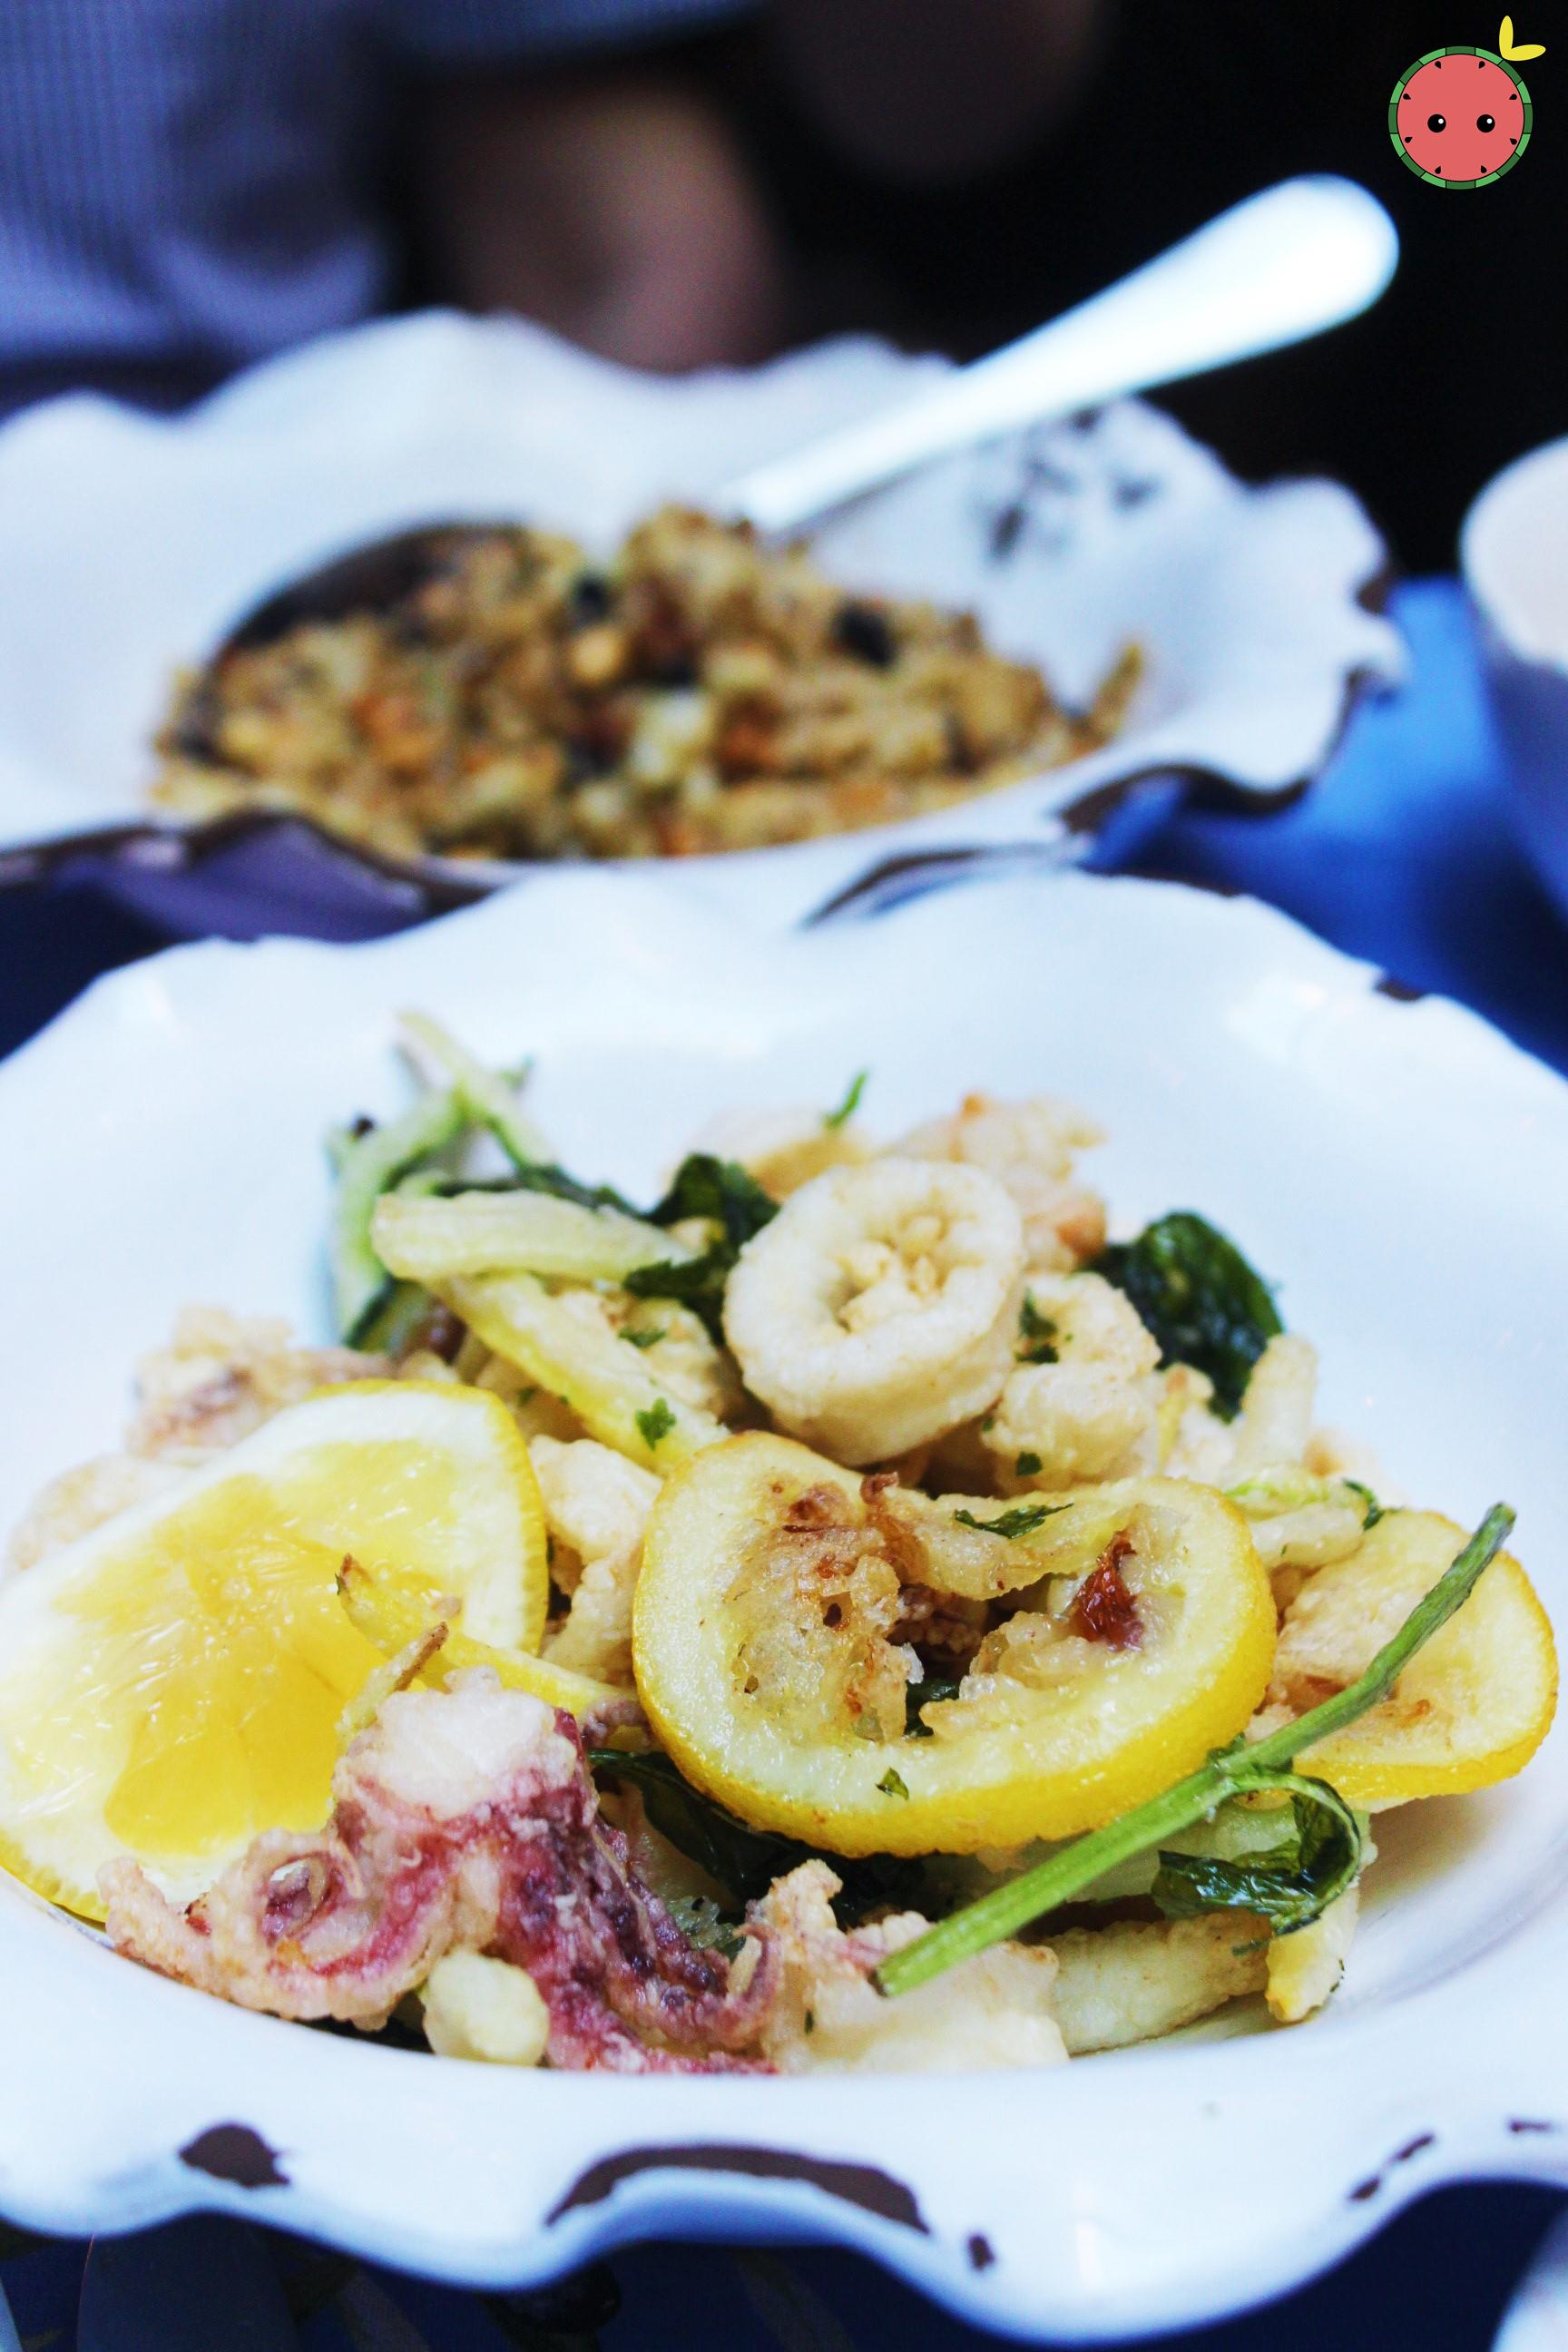 Fritto Misto - Fried calamari, rock shrimp and zucchine with lemon and mint